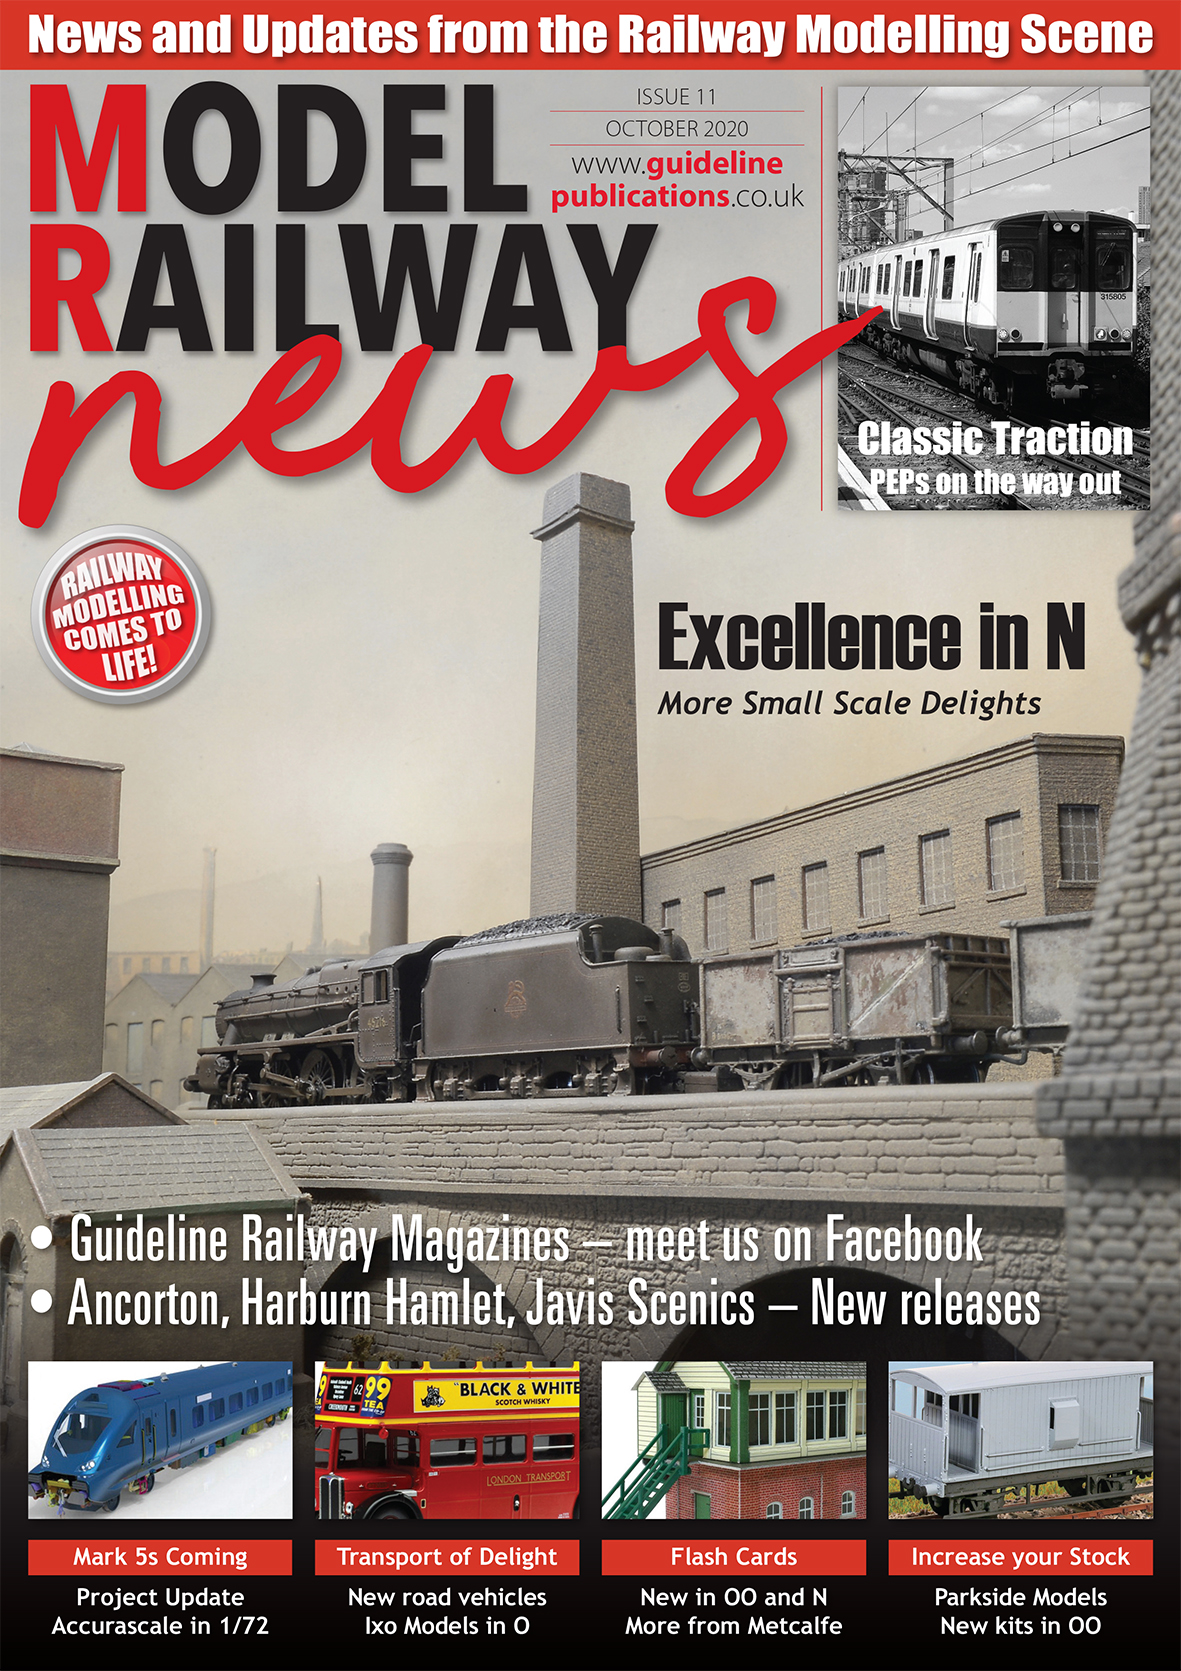 Guideline Publications Model Railway News October Issue 11 Oct2020